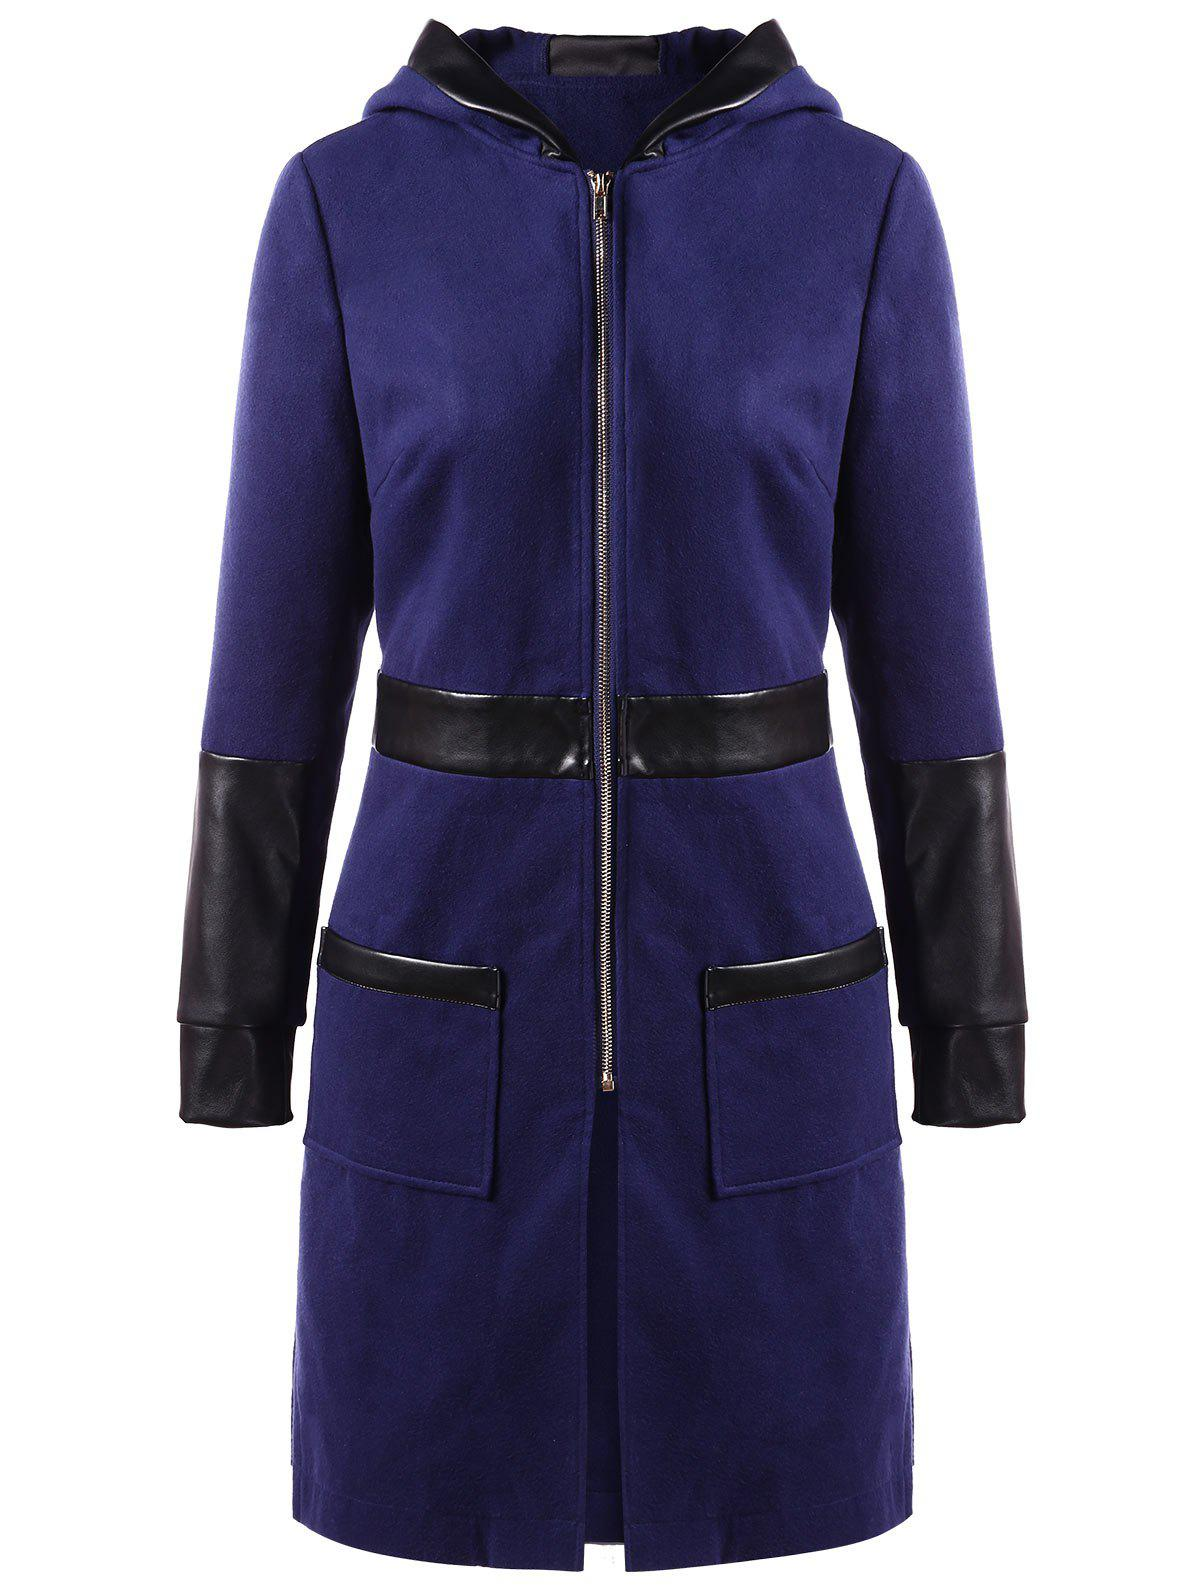 PU Leather Panel Zipper Hooded Coat - DEEP BLUE L